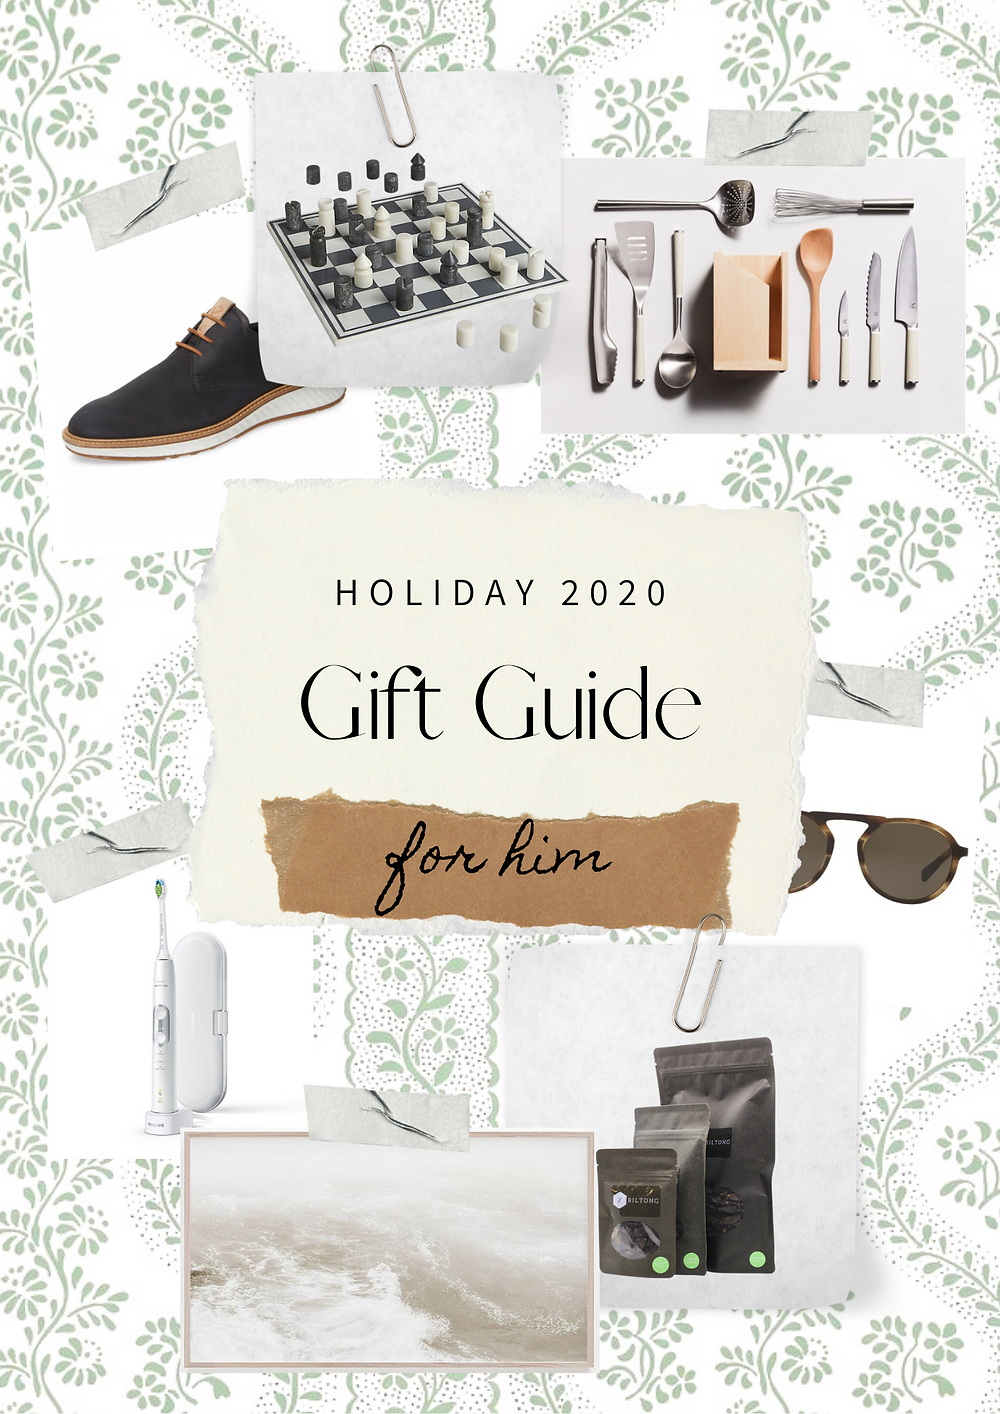 Holiday gift guide best finds for him